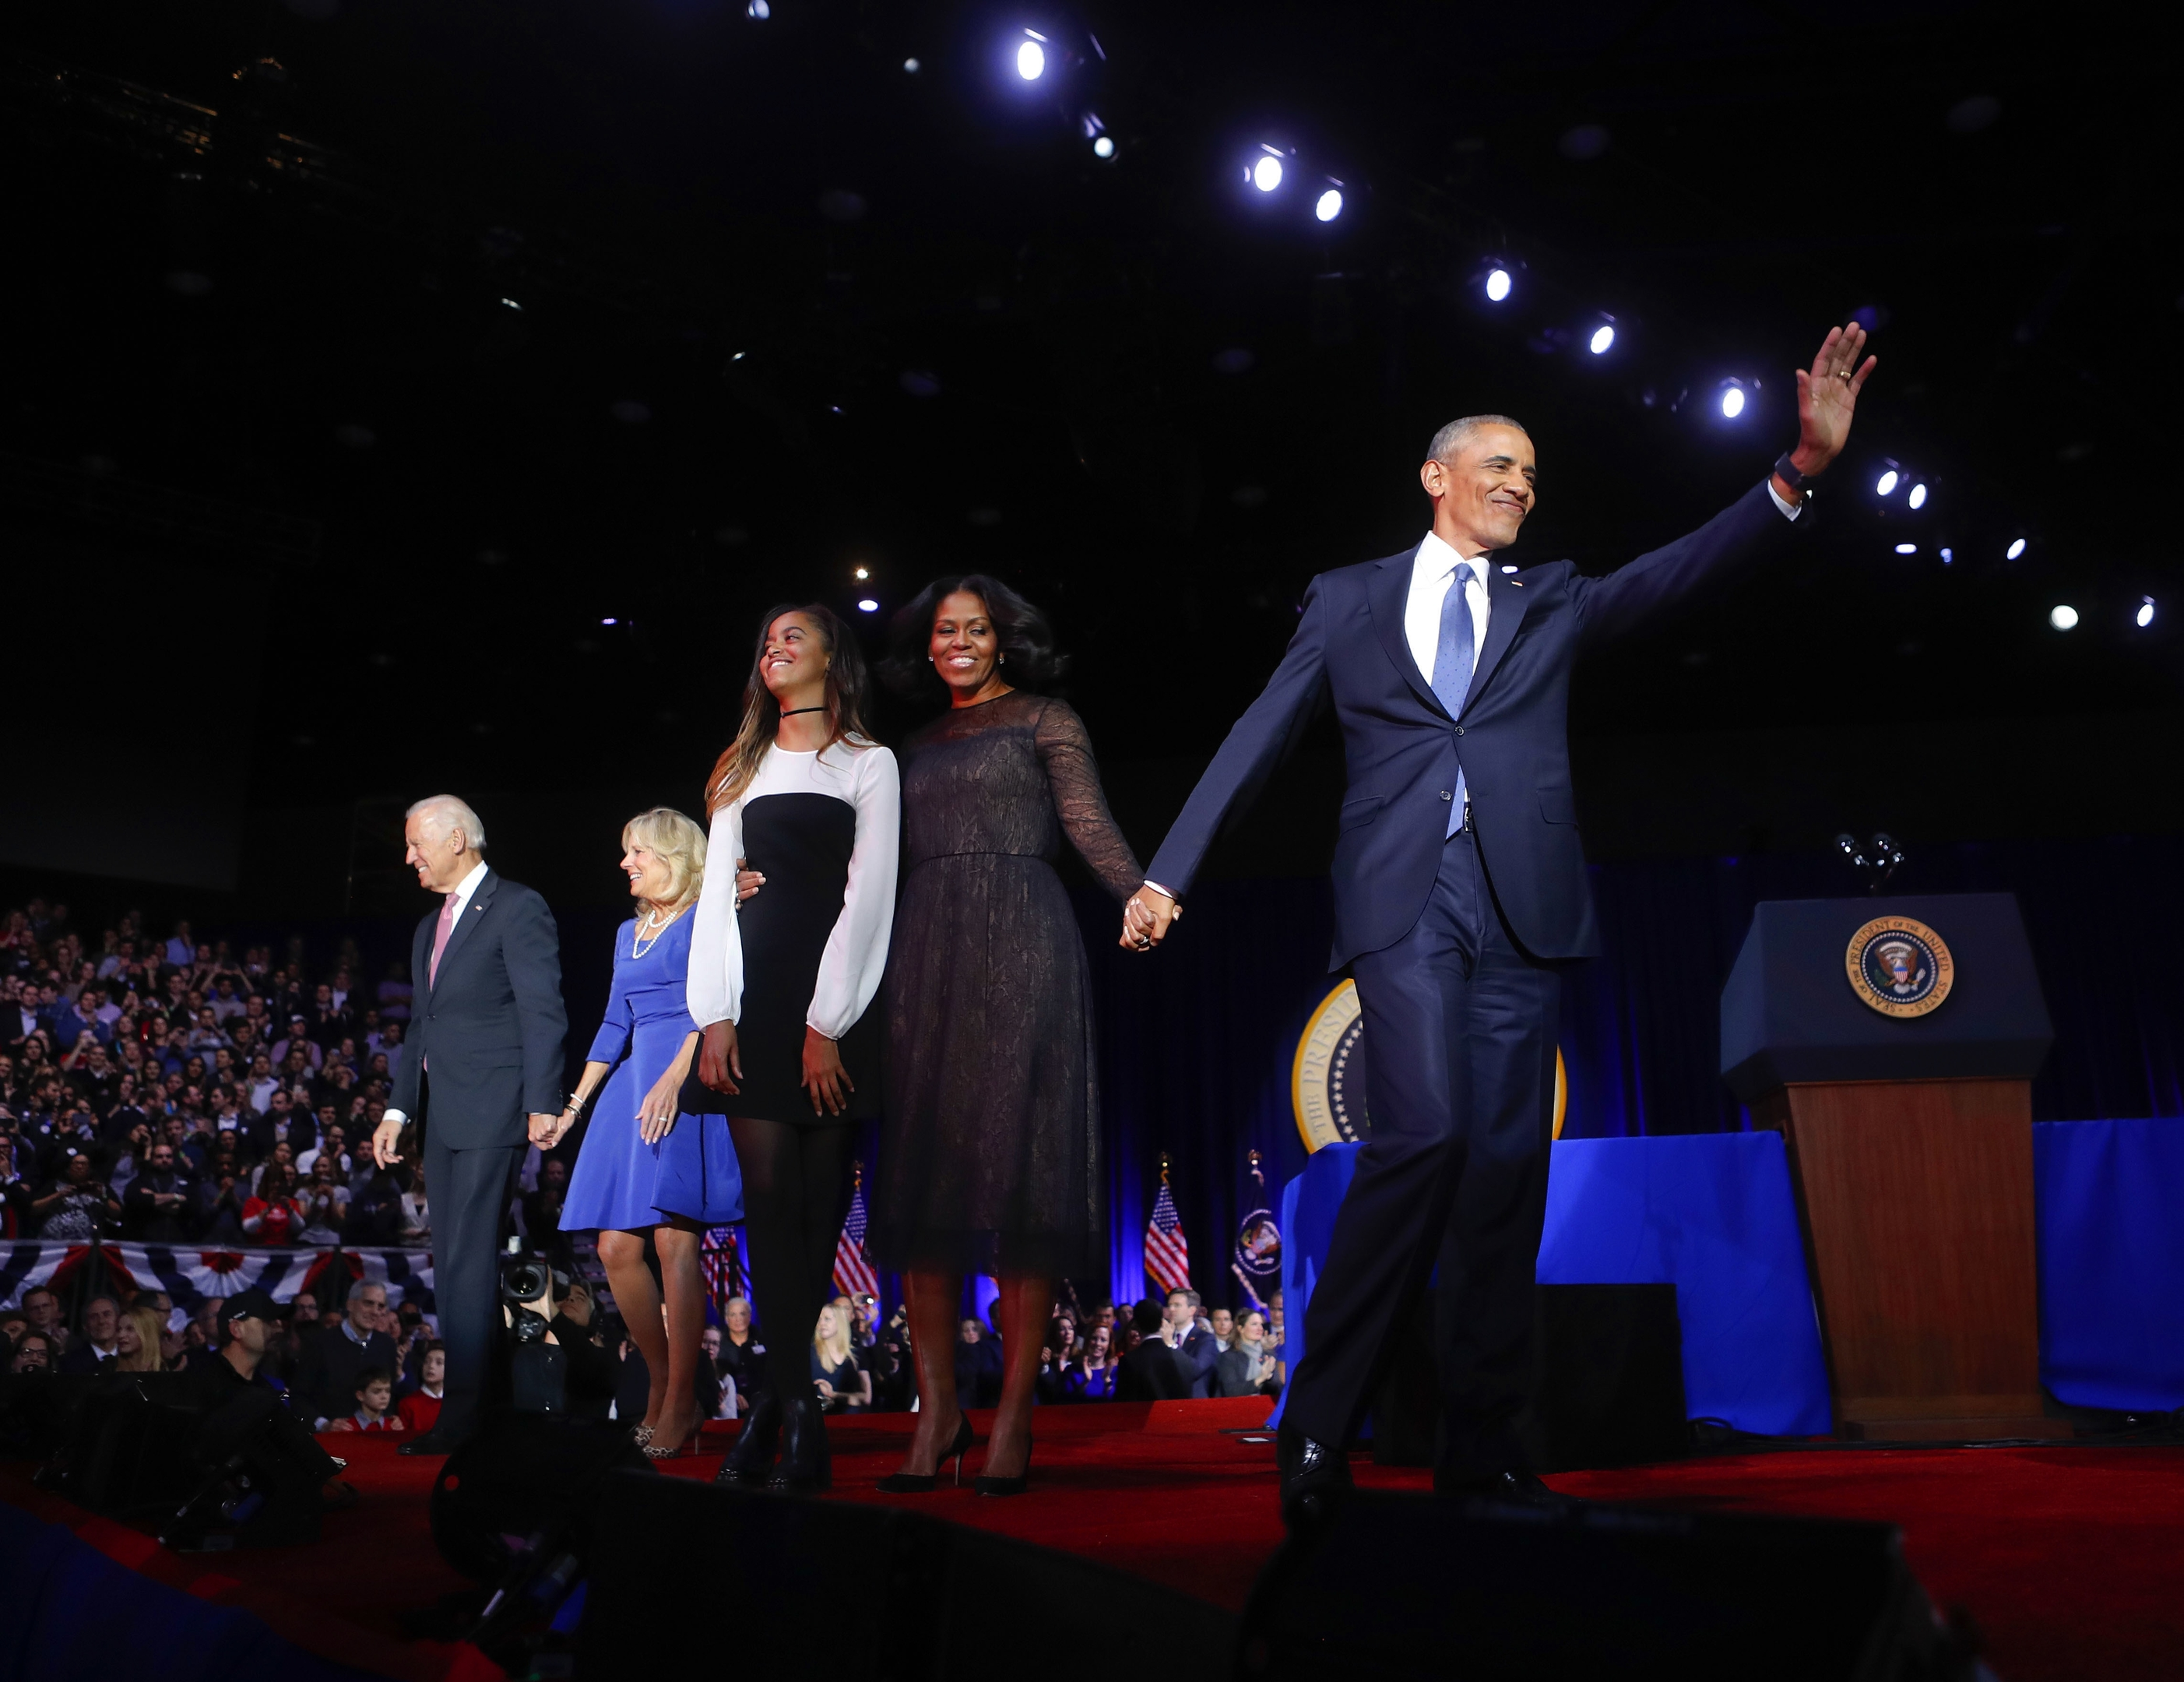 President Barack Obama waves on stage with first lady Michelle Obama, daughter Malia, Vice President Joe Biden and his wife Jill Biden after his farewell address at McCormick Place in Chicago